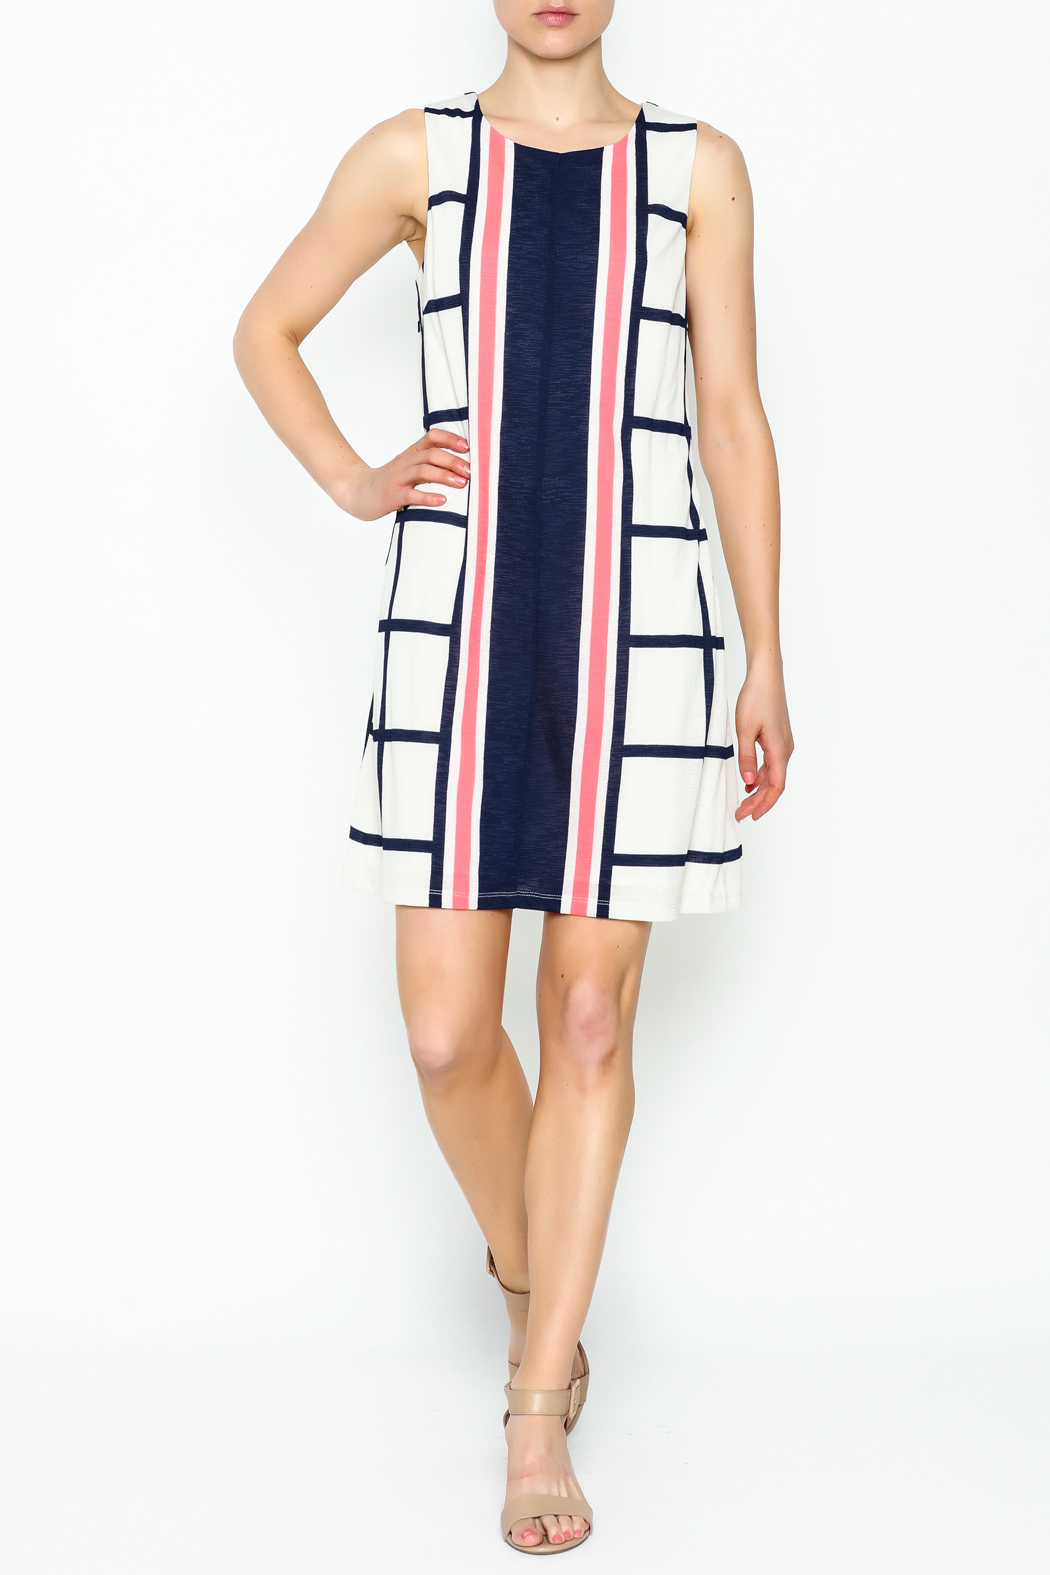 Julie Brown NYC Lanai Dress - Side Cropped Image